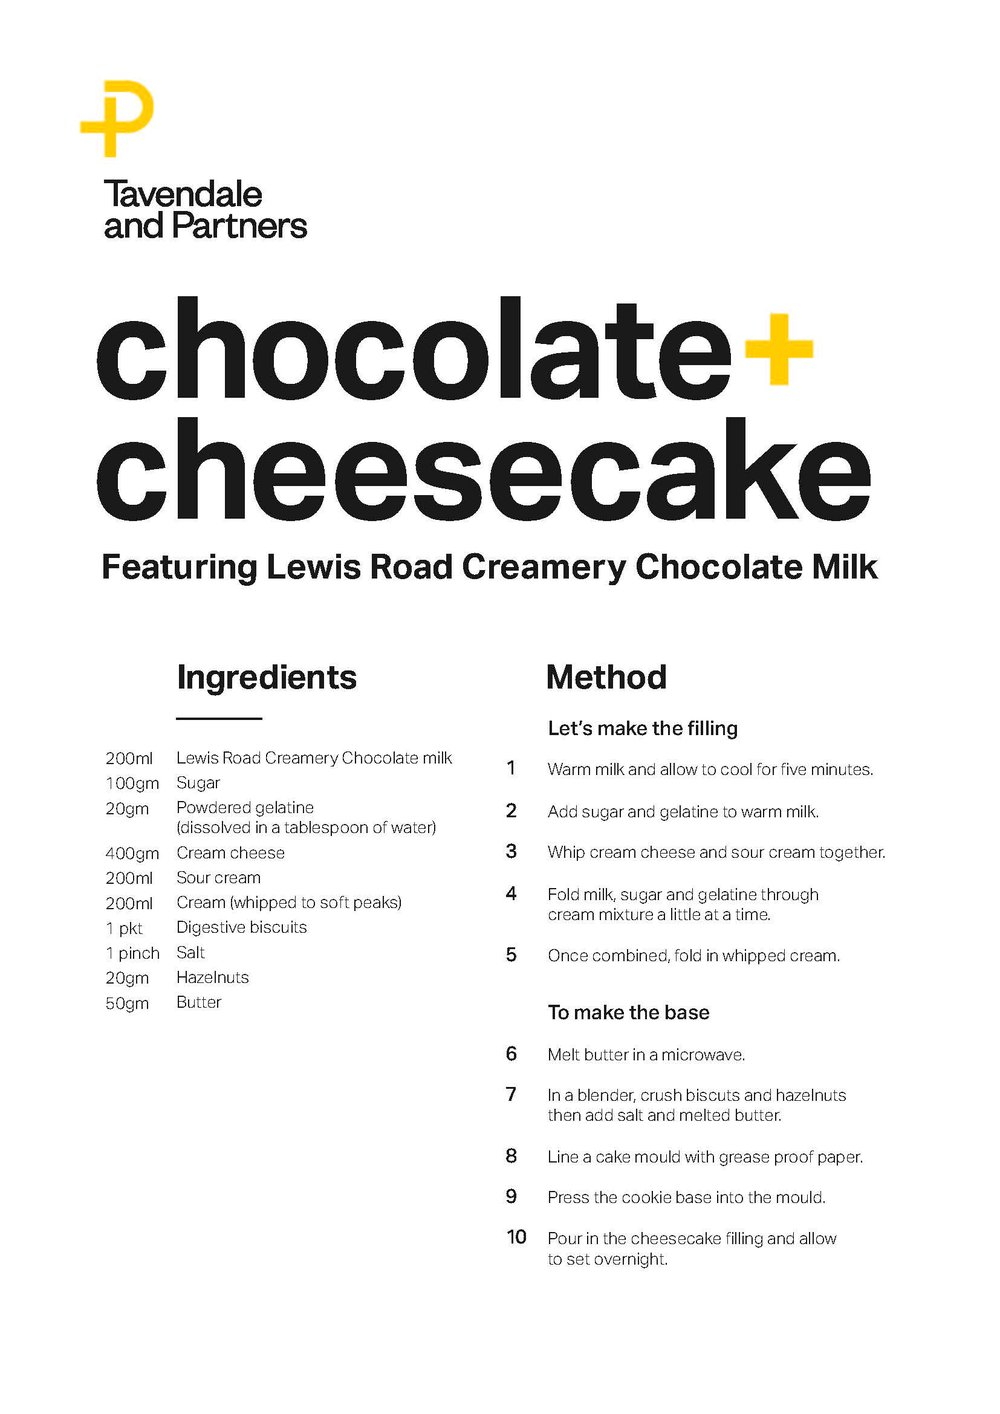 LRC Choc Cheesecake Recipe.jpg